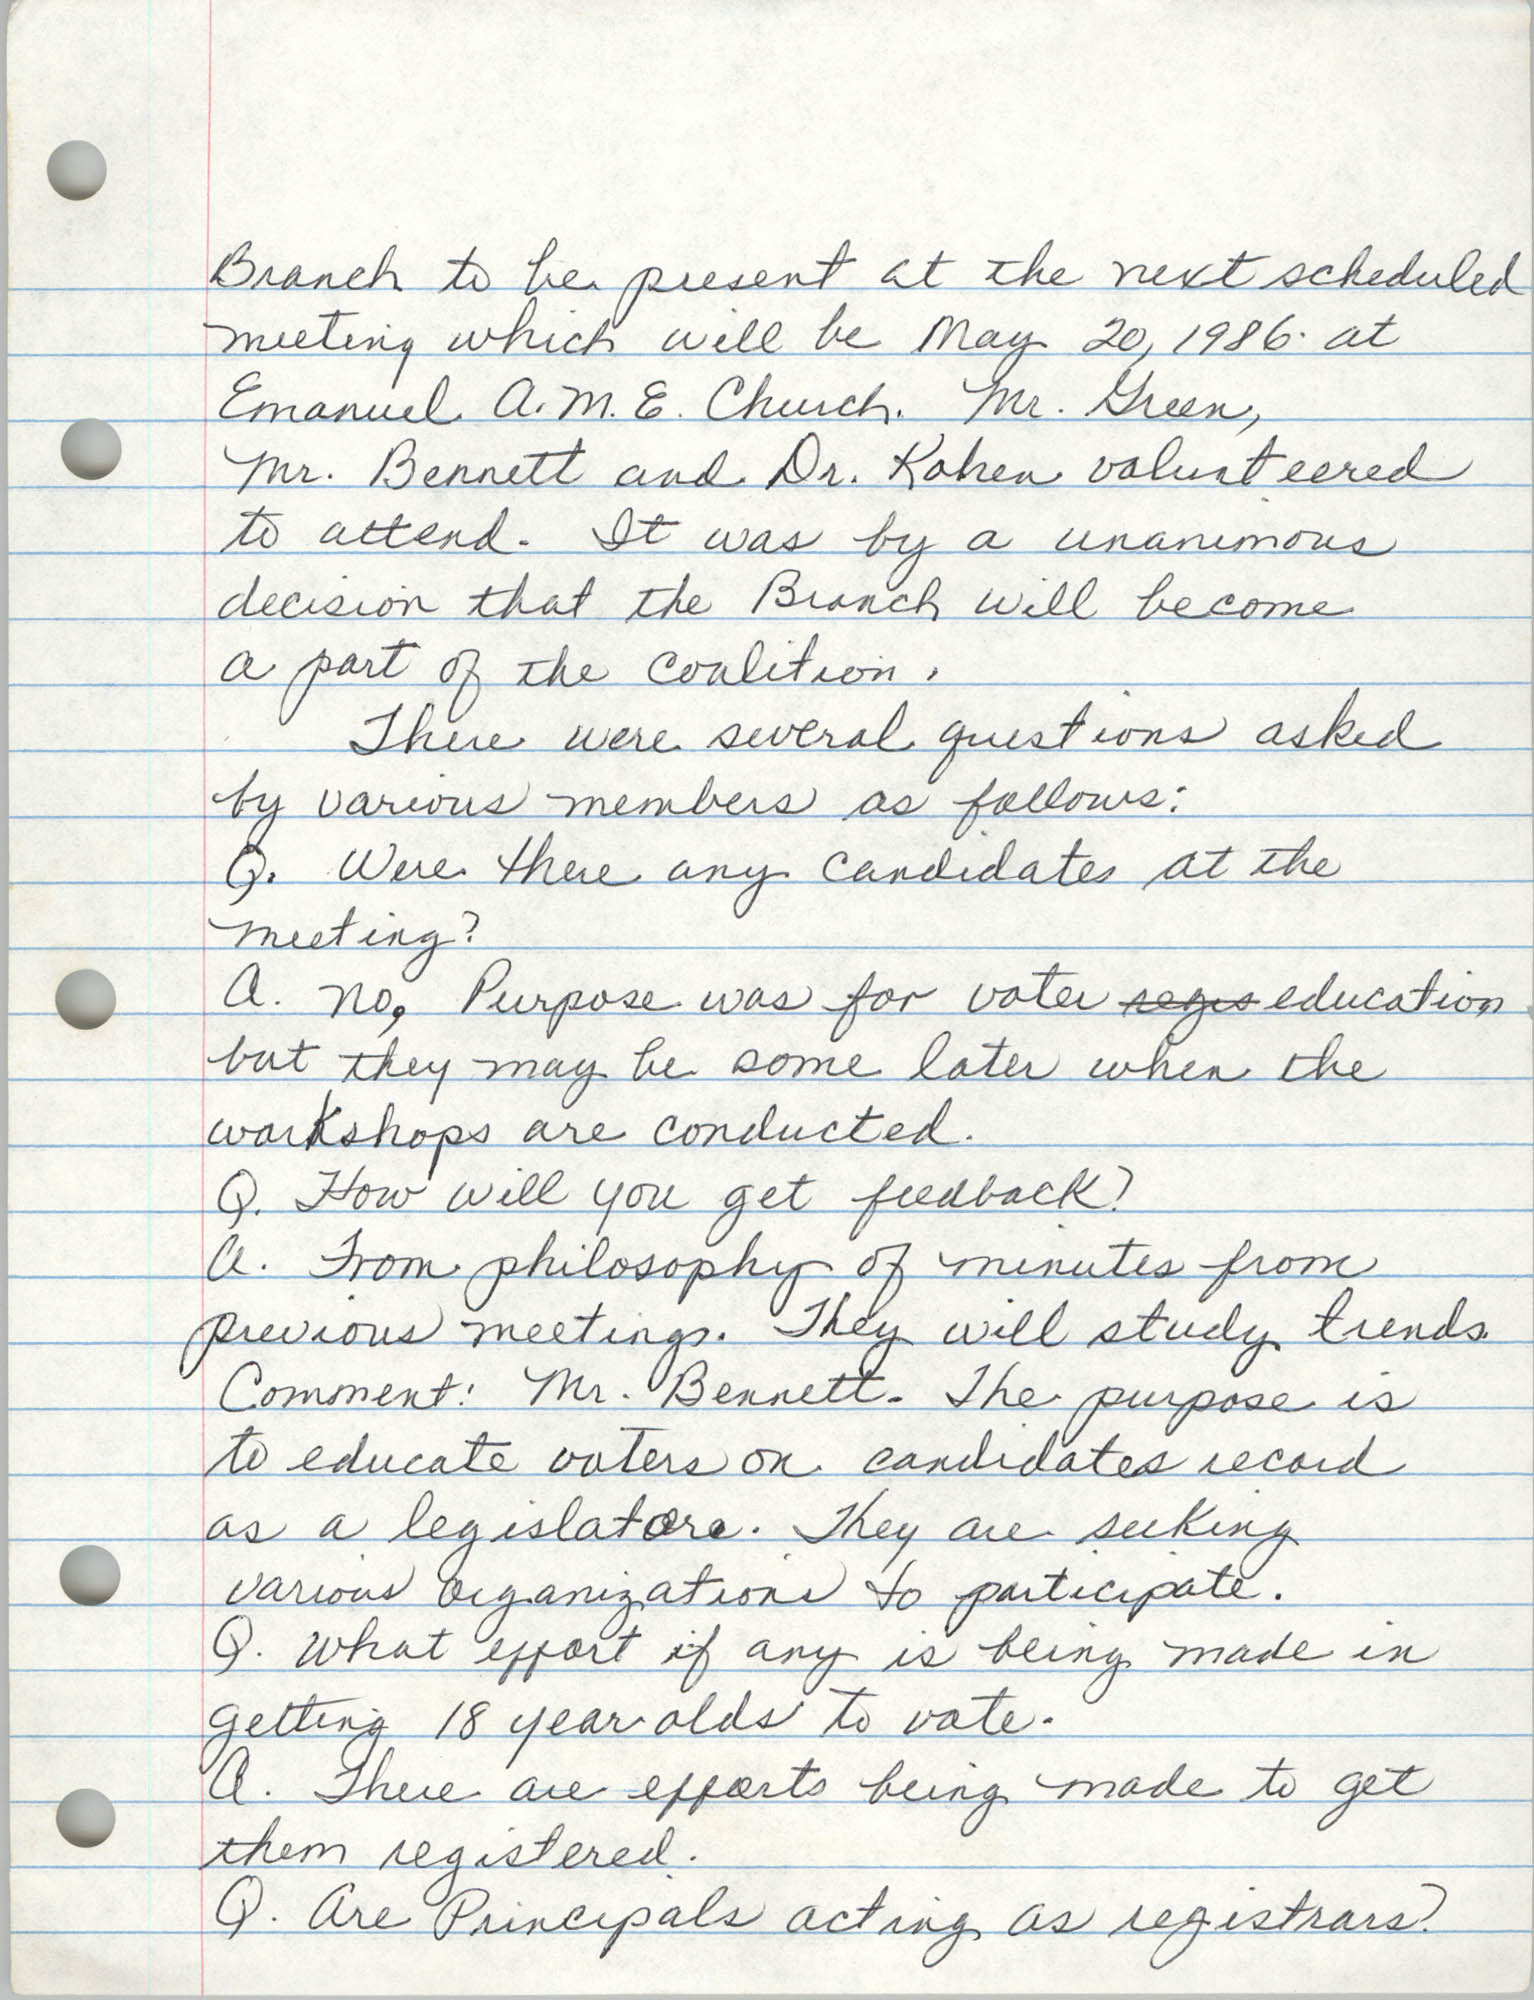 Minutes, Charleston Branch of the NAACP, General Membership Meeting, April 24, 1986, Page 7